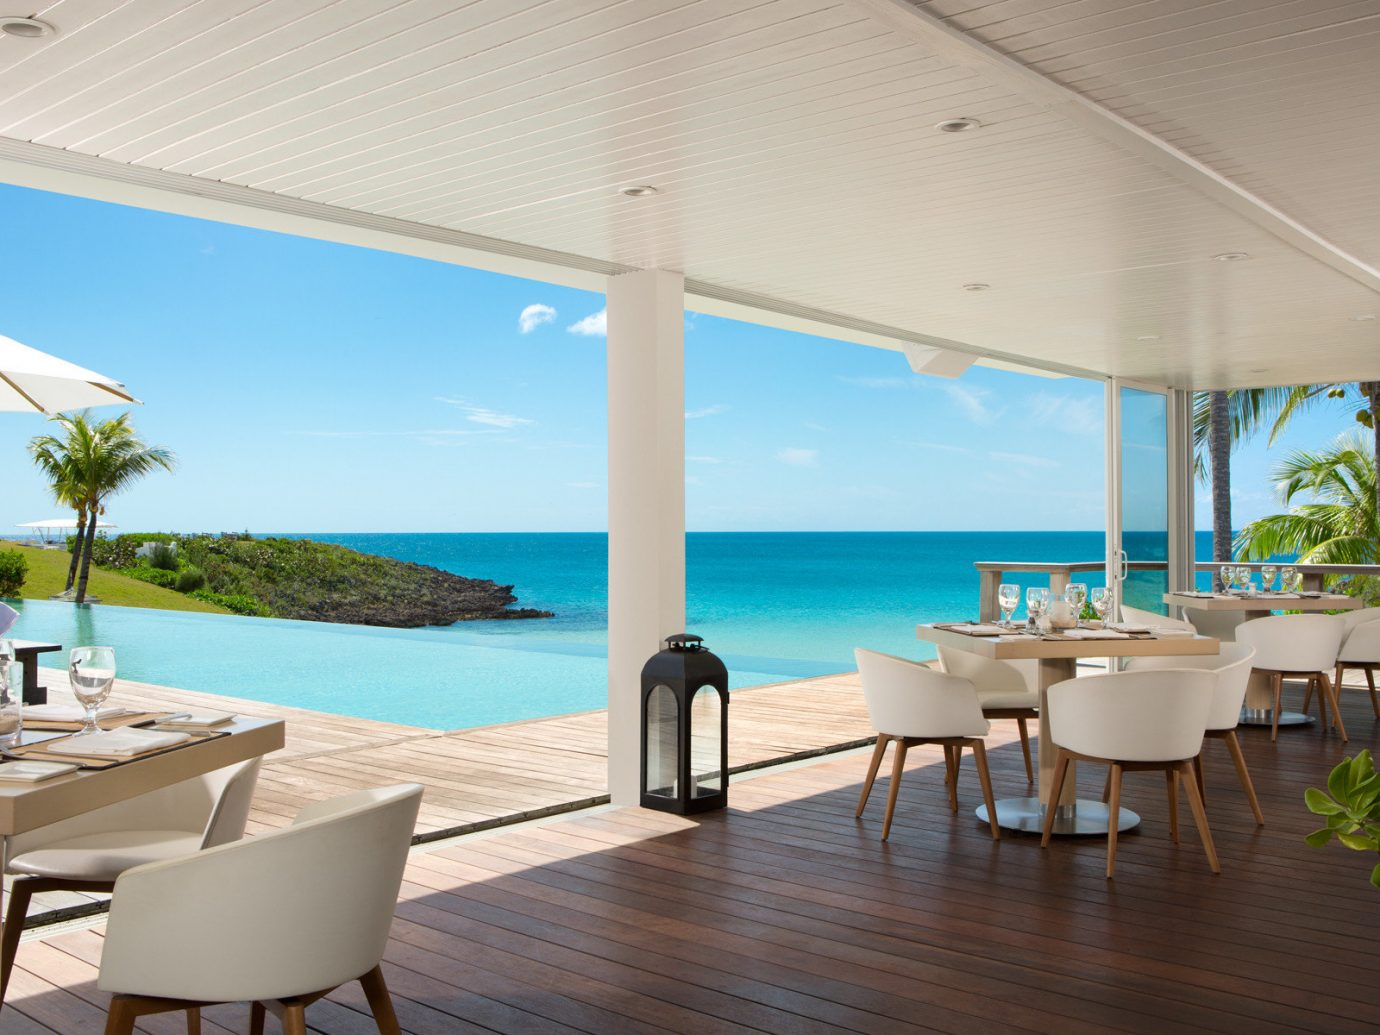 Restaurant view at The Cove Eleuthera